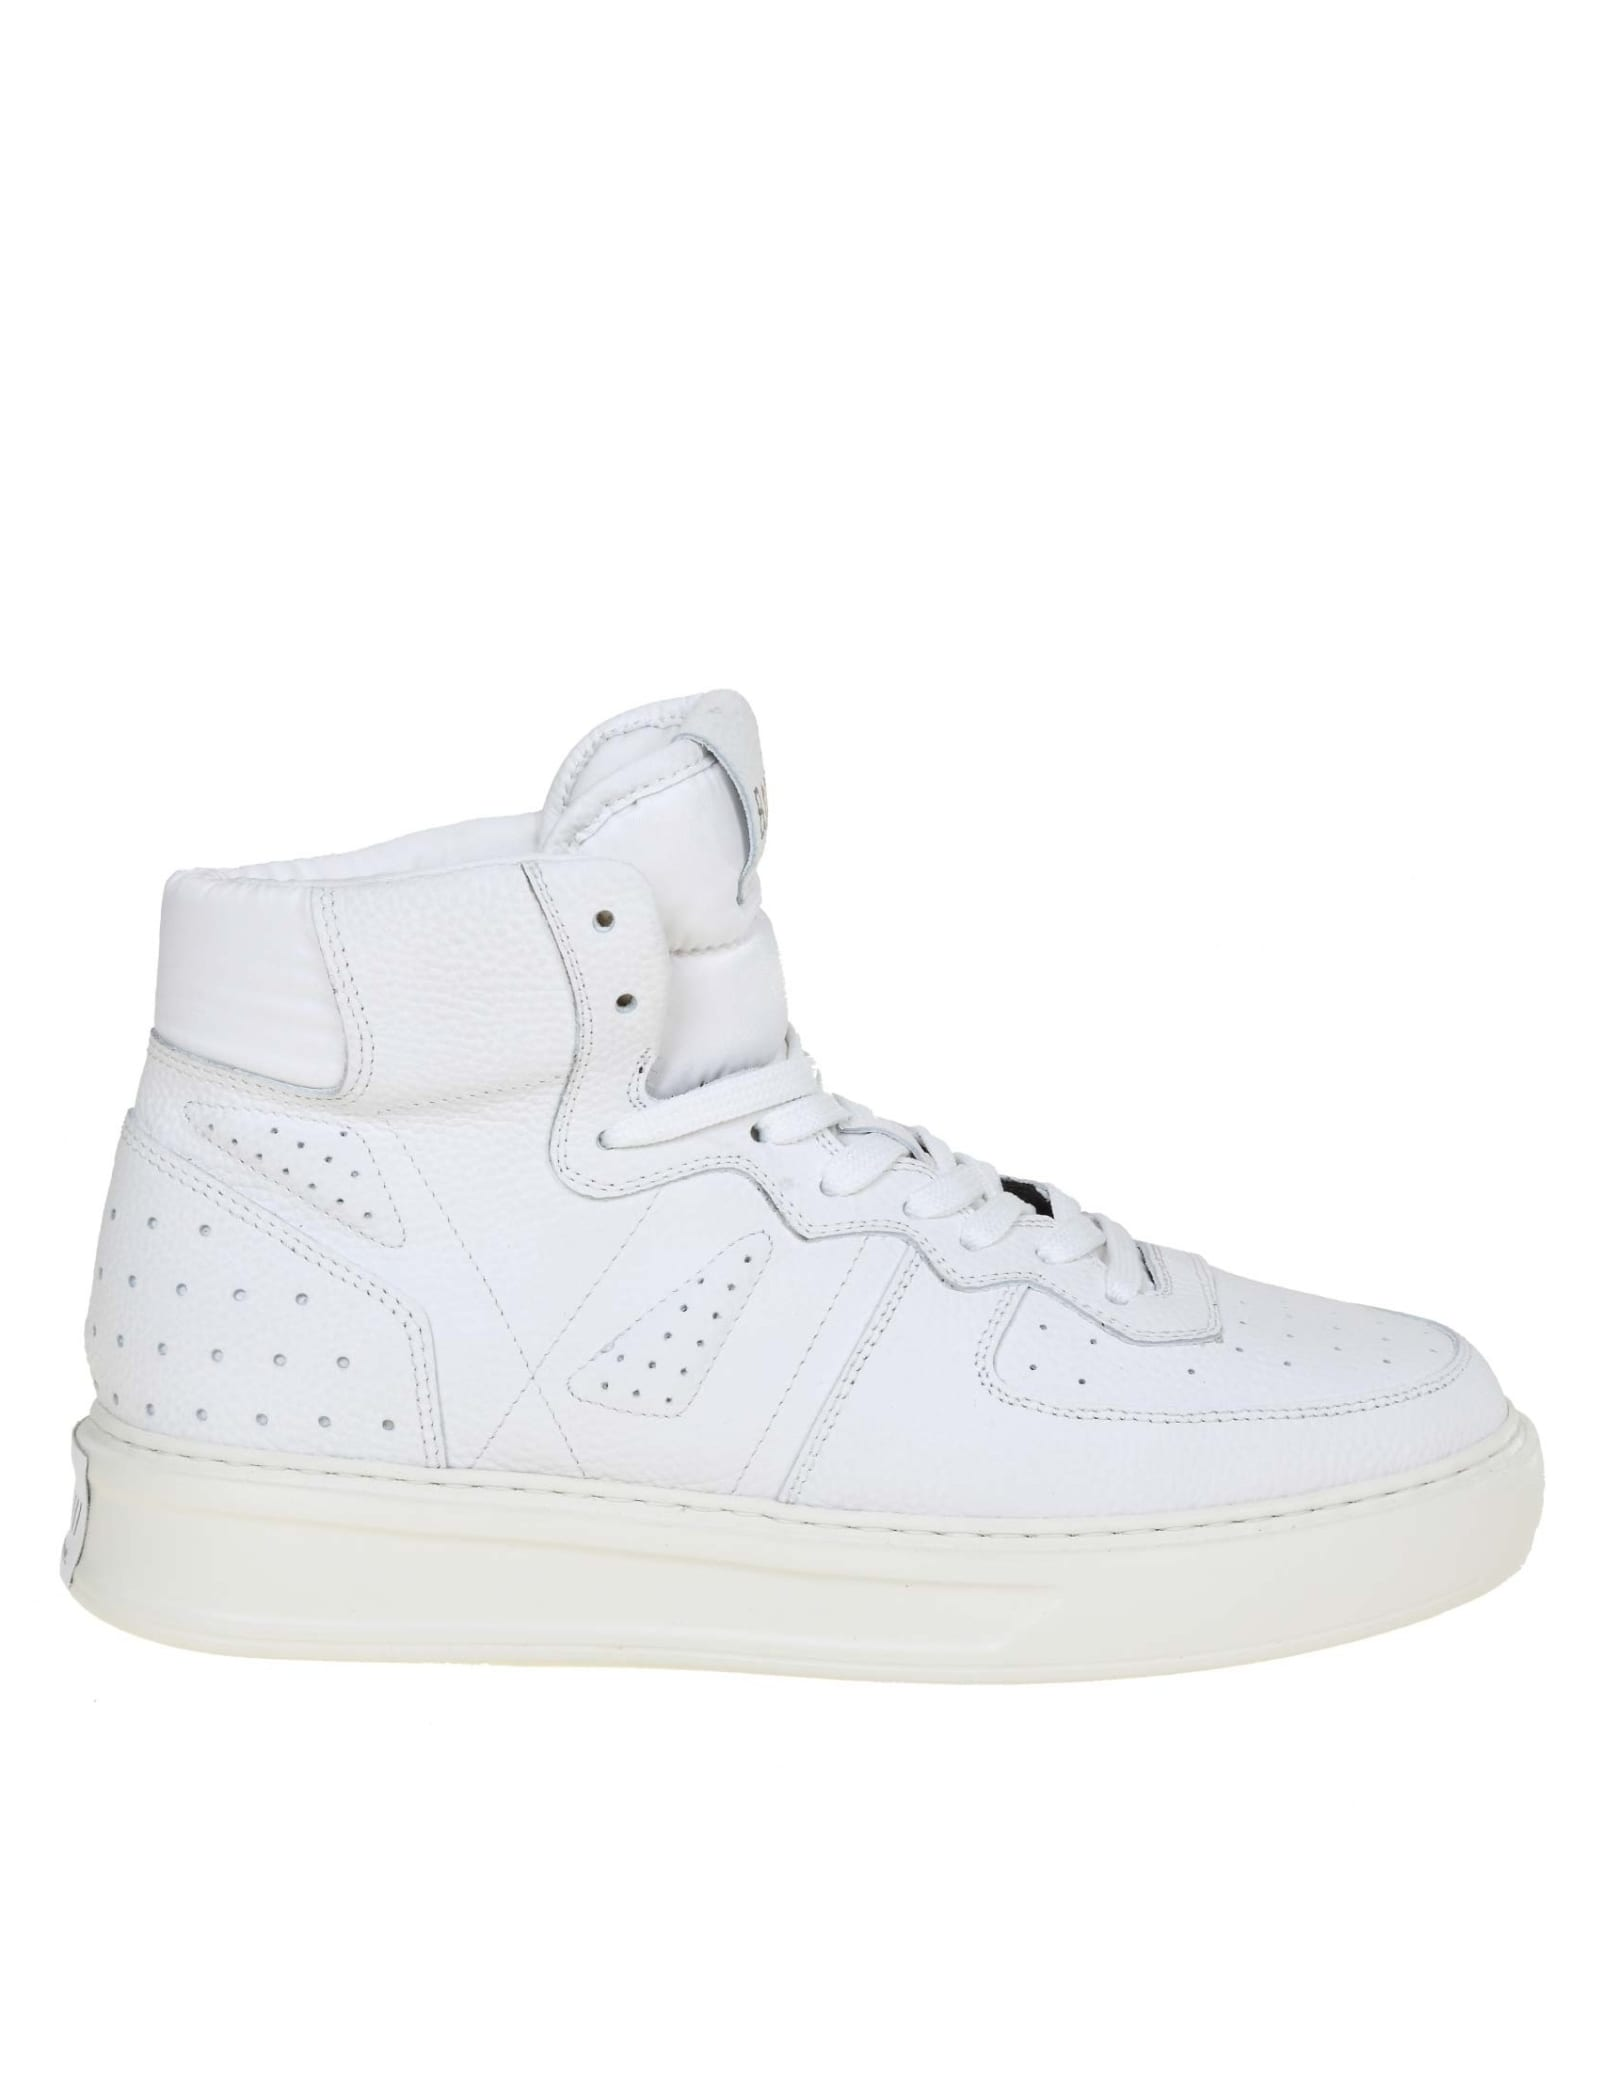 Phoenix Sneakers In White Leather